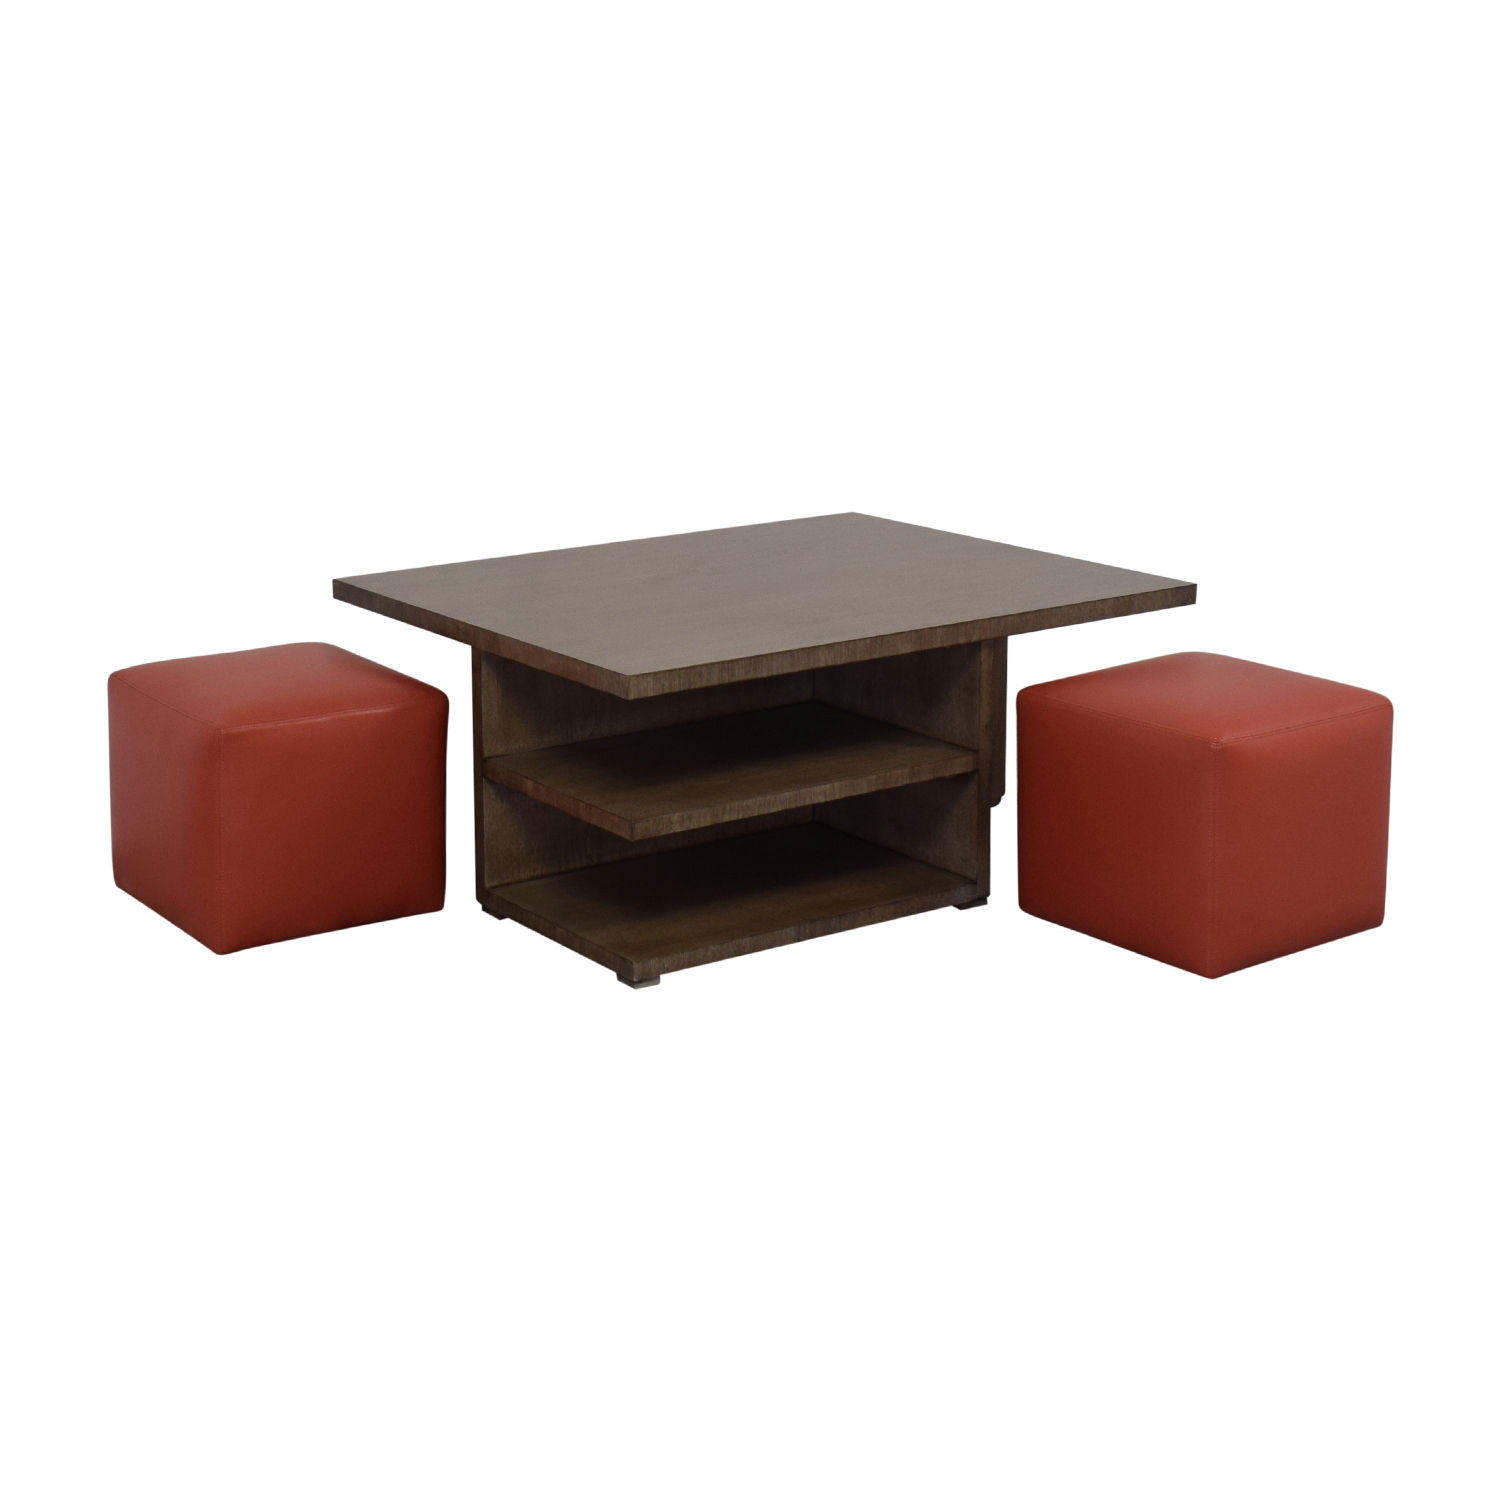 Exceptionnel 71% OFF   CTH Sherrill Occasional Furniture CTH Sherrill Occasional  Furniture Cocktail Table With Ottomans / Tables